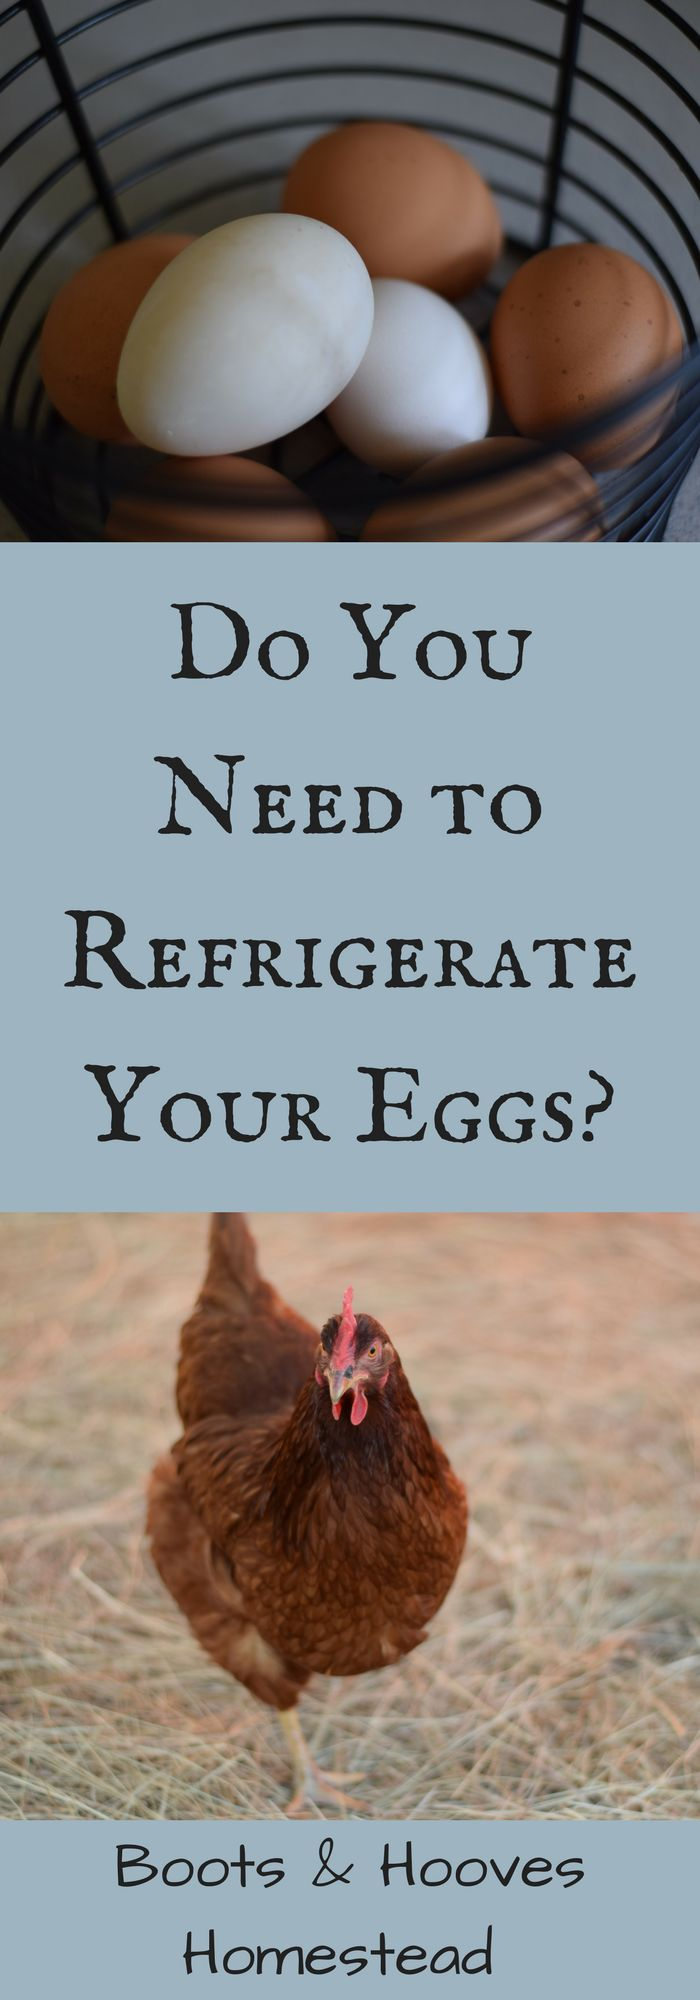 Do you need to refrigerate your eggs? The short answer is sometimes yes and sometimes no. I'll explain why you do and don't need to refrigerate your eggs.